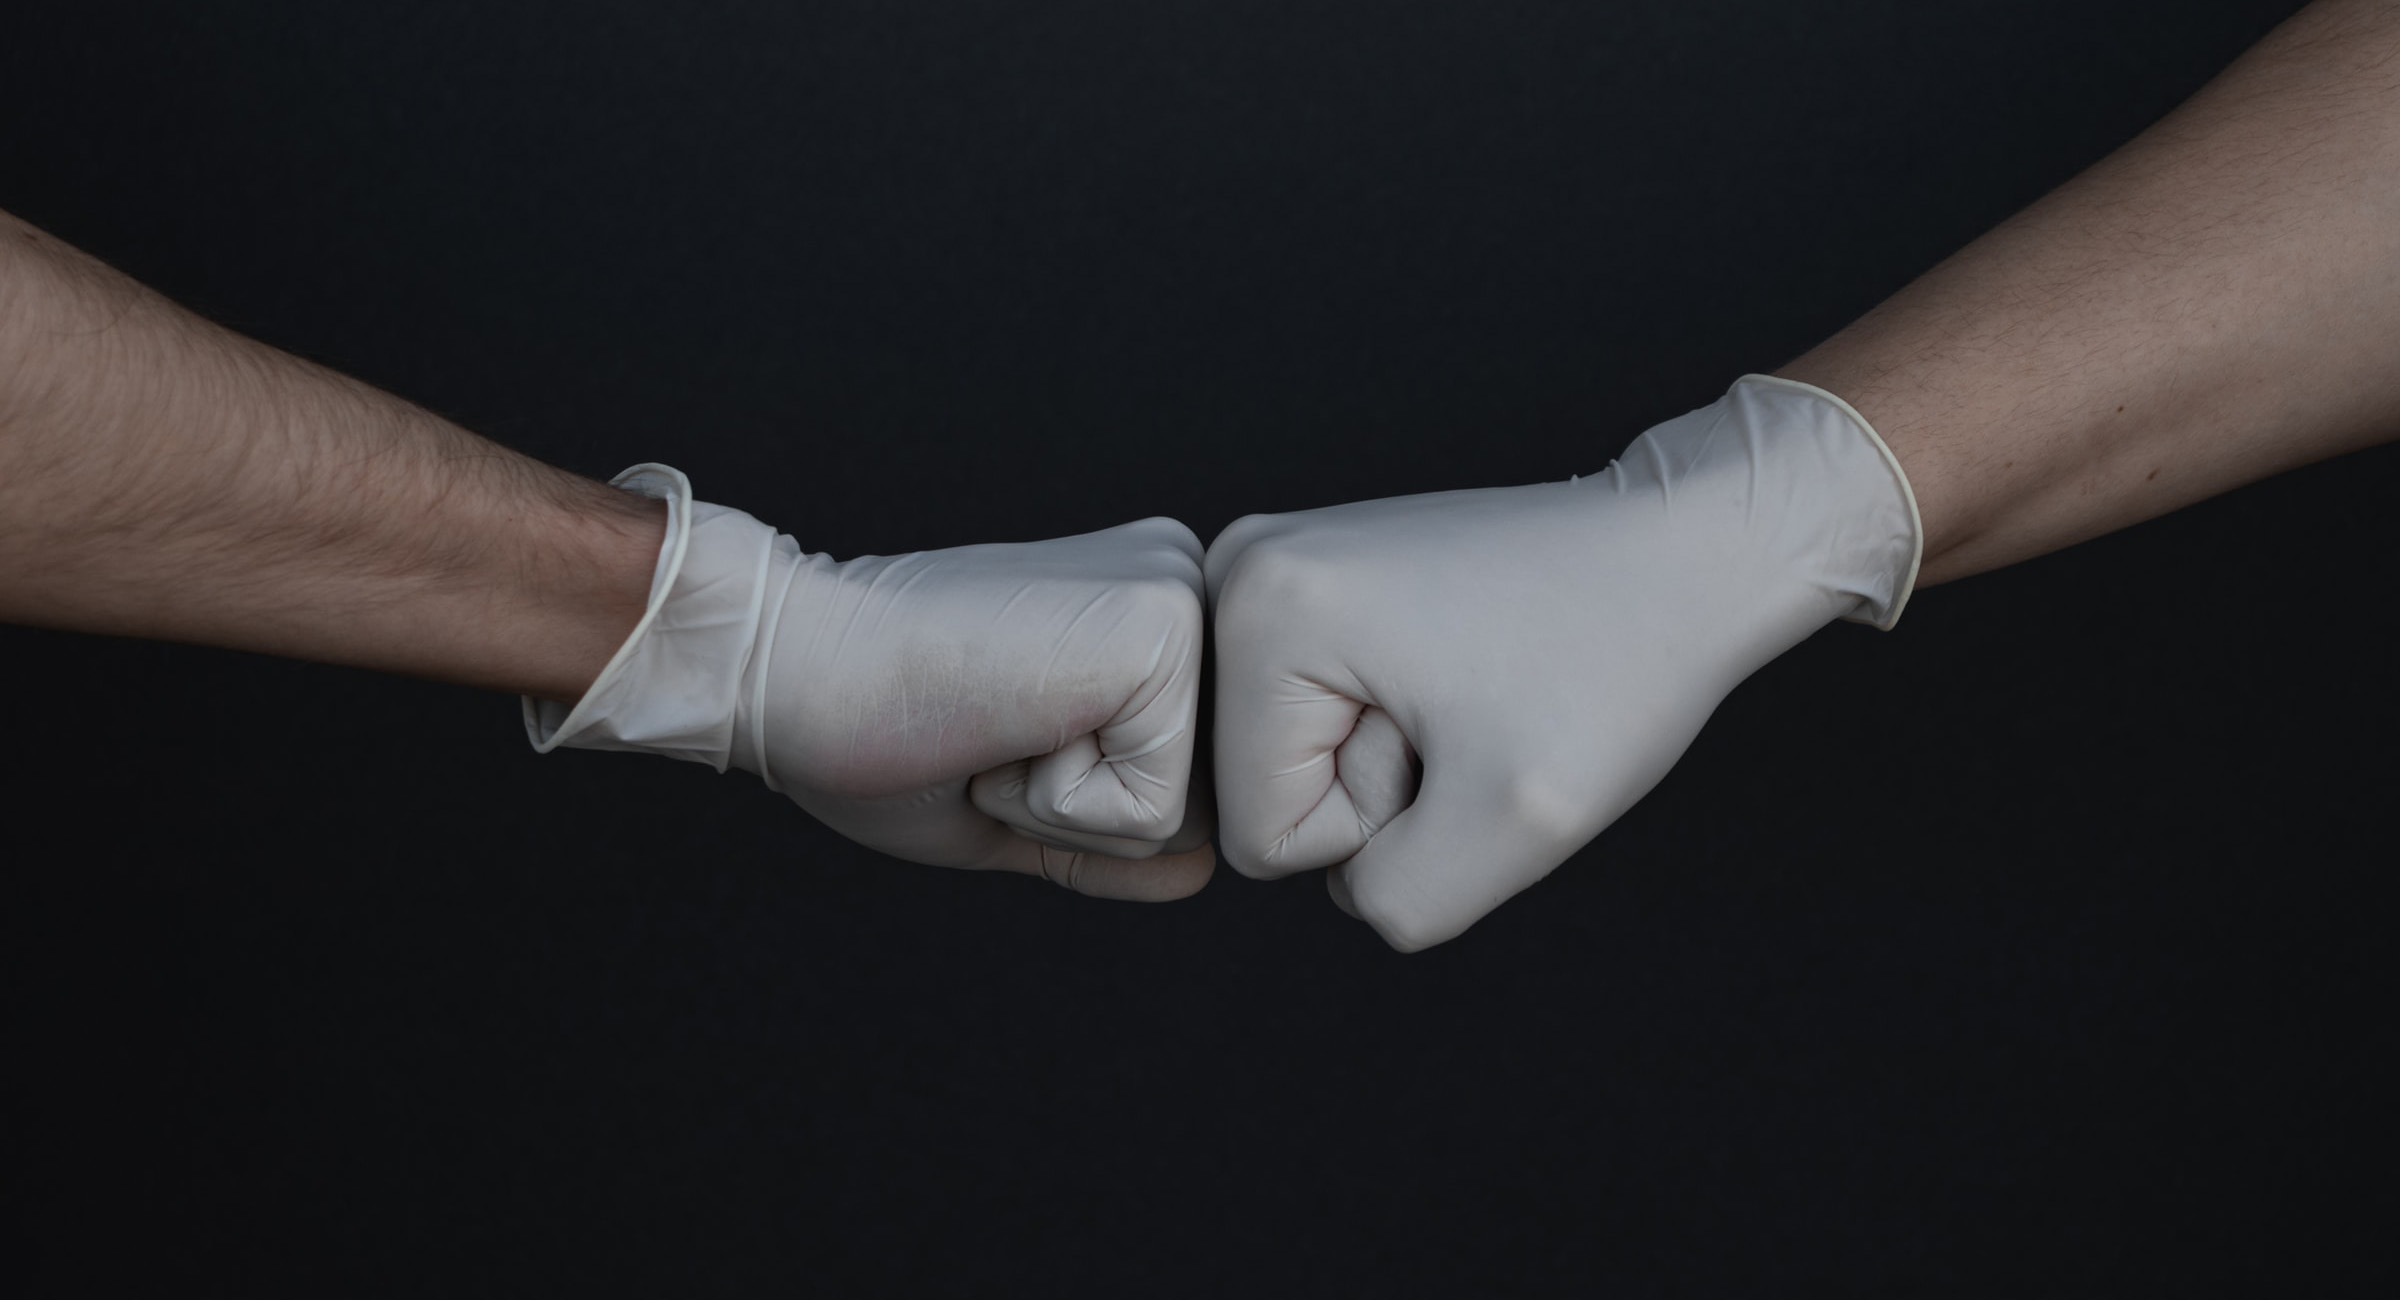 Two hands wearing gloves are shown fist bumping against a solid black background.